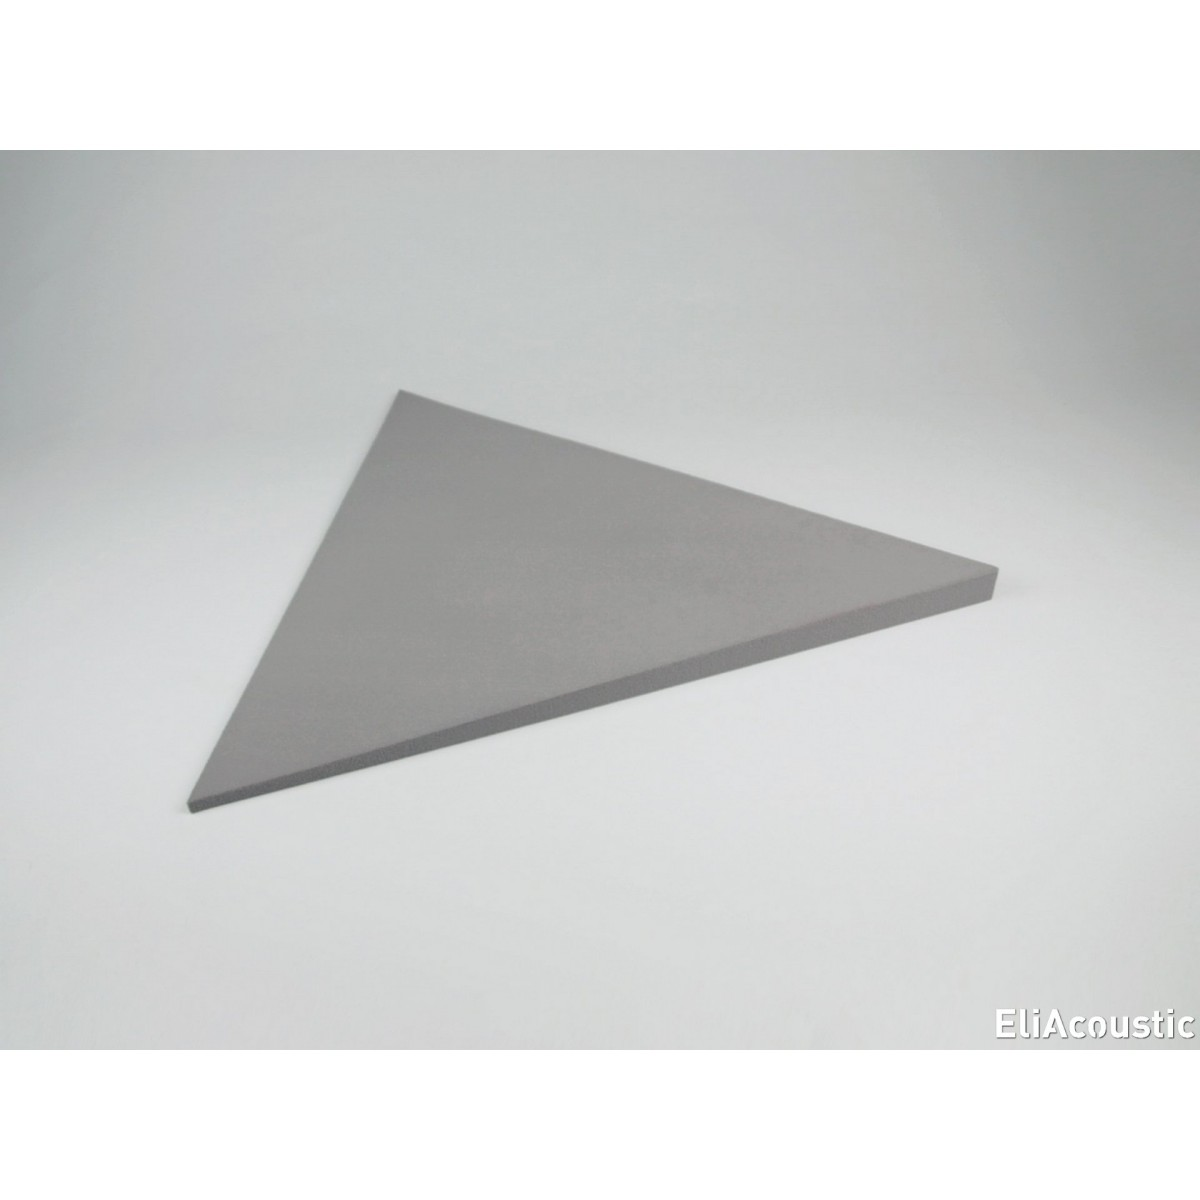 EliAcoustic Flag Slim Premiere Light Grey (Ref 146). Panel acustico triangulo